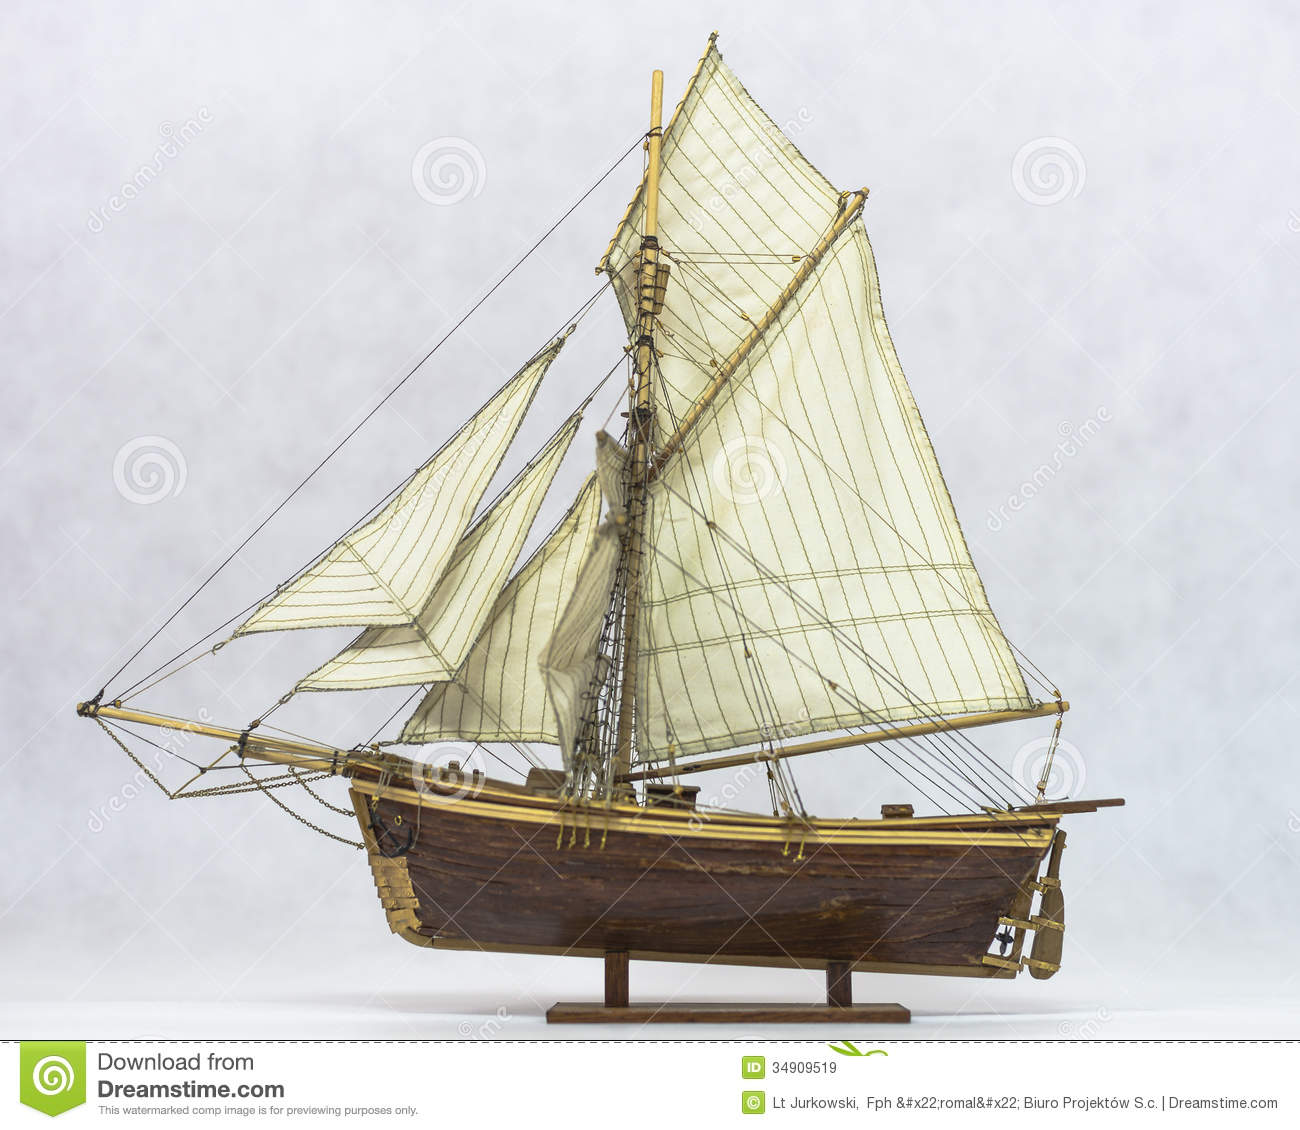 Sailing Ship Model Royalty Free Stock Images - Image: 34909519